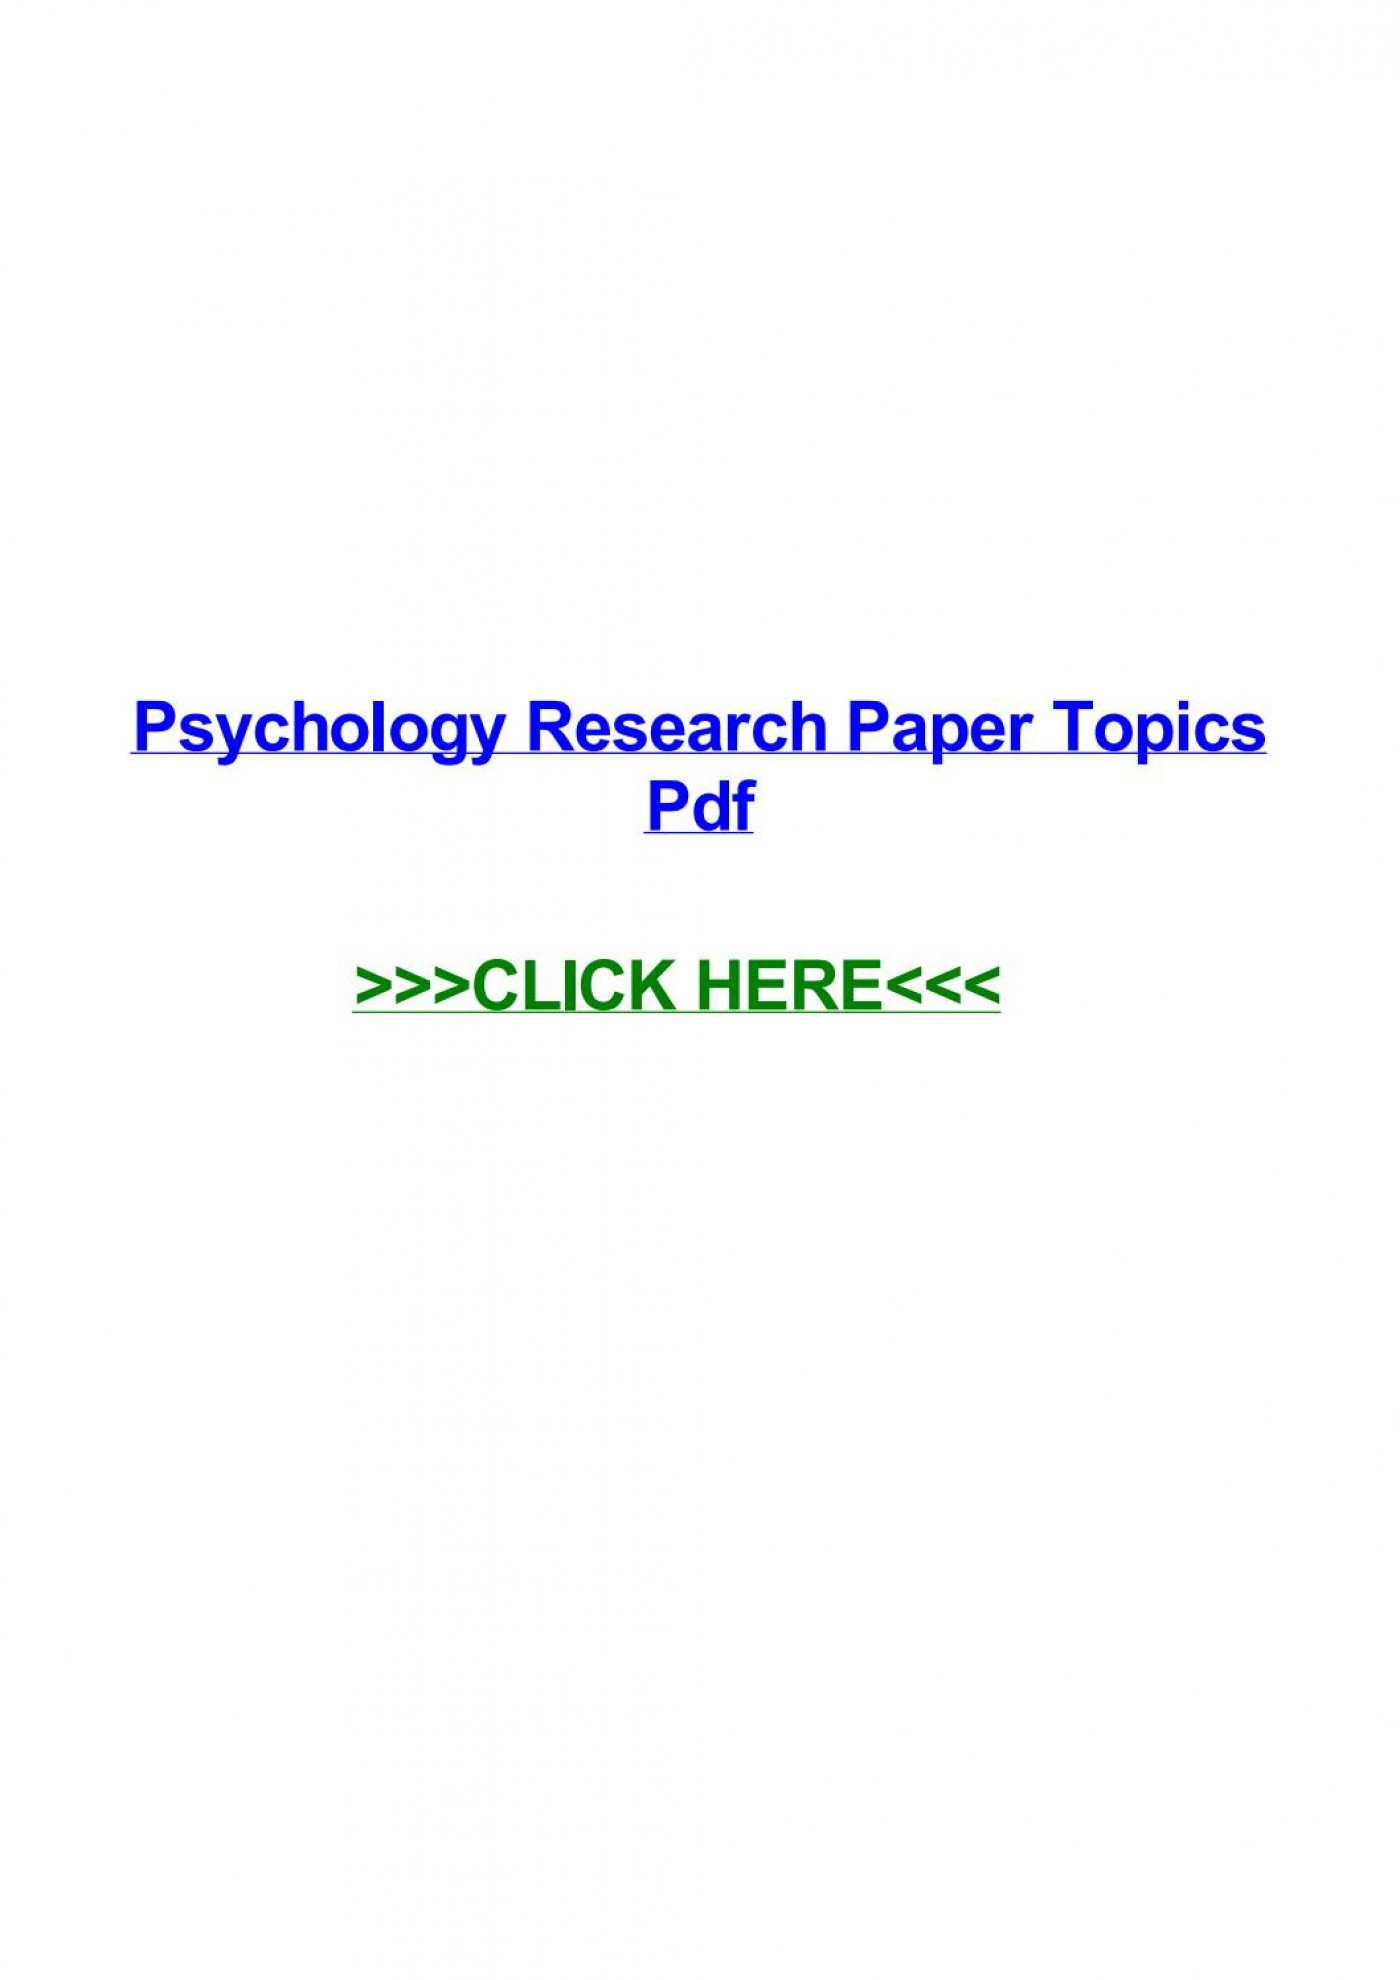 015 Psychology Research Paper Topics Pdf Page 1 Best 1400